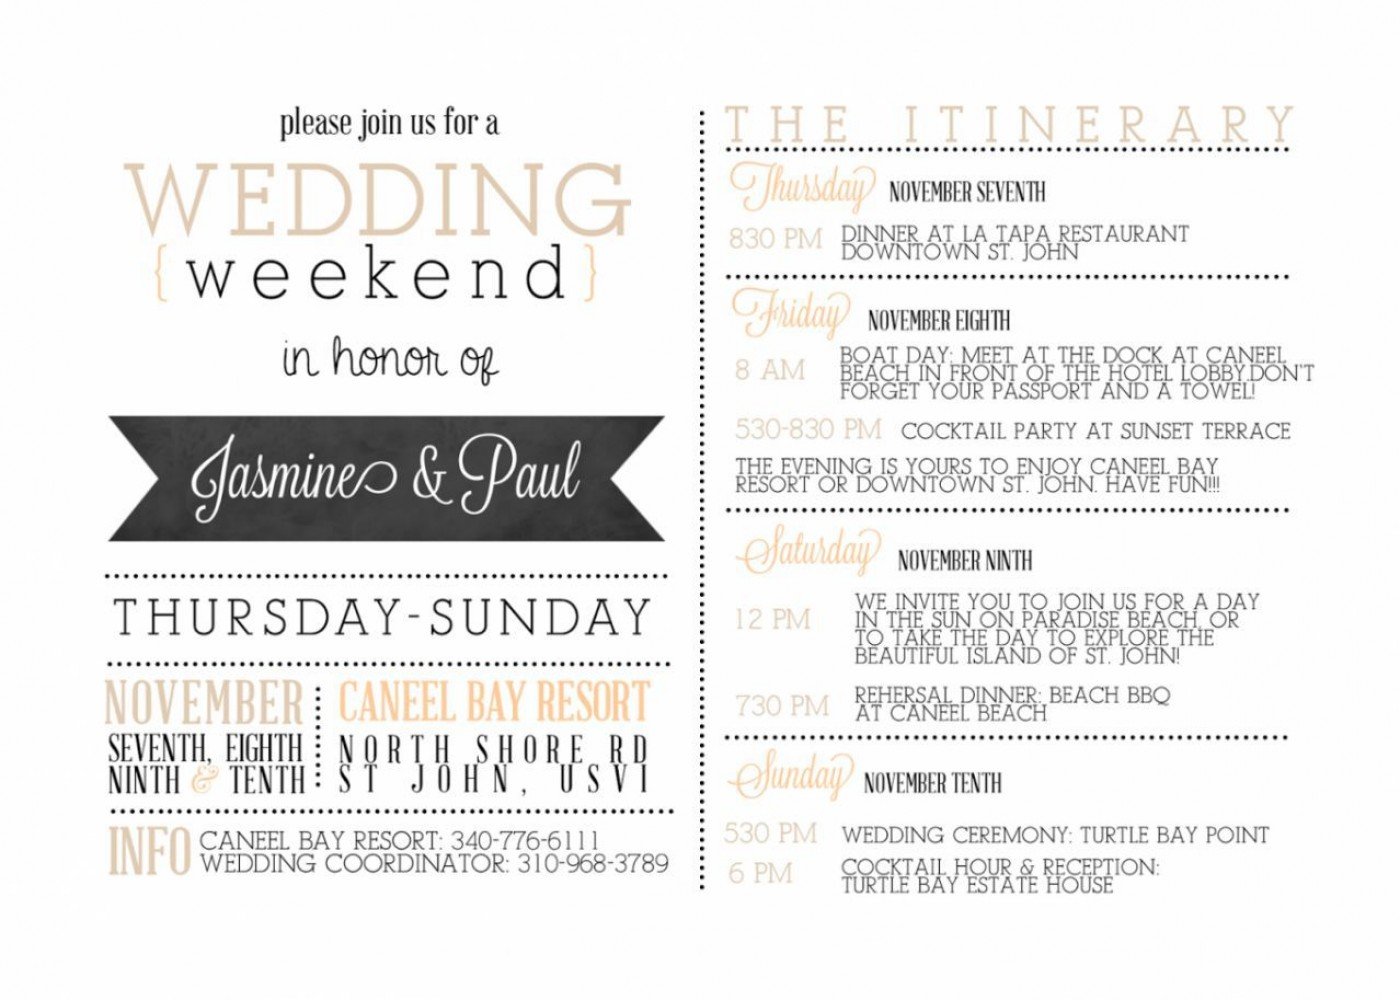 001 Impressive Wedding Weekend Itinerary Template Concept  Day Timeline Word Sample1400